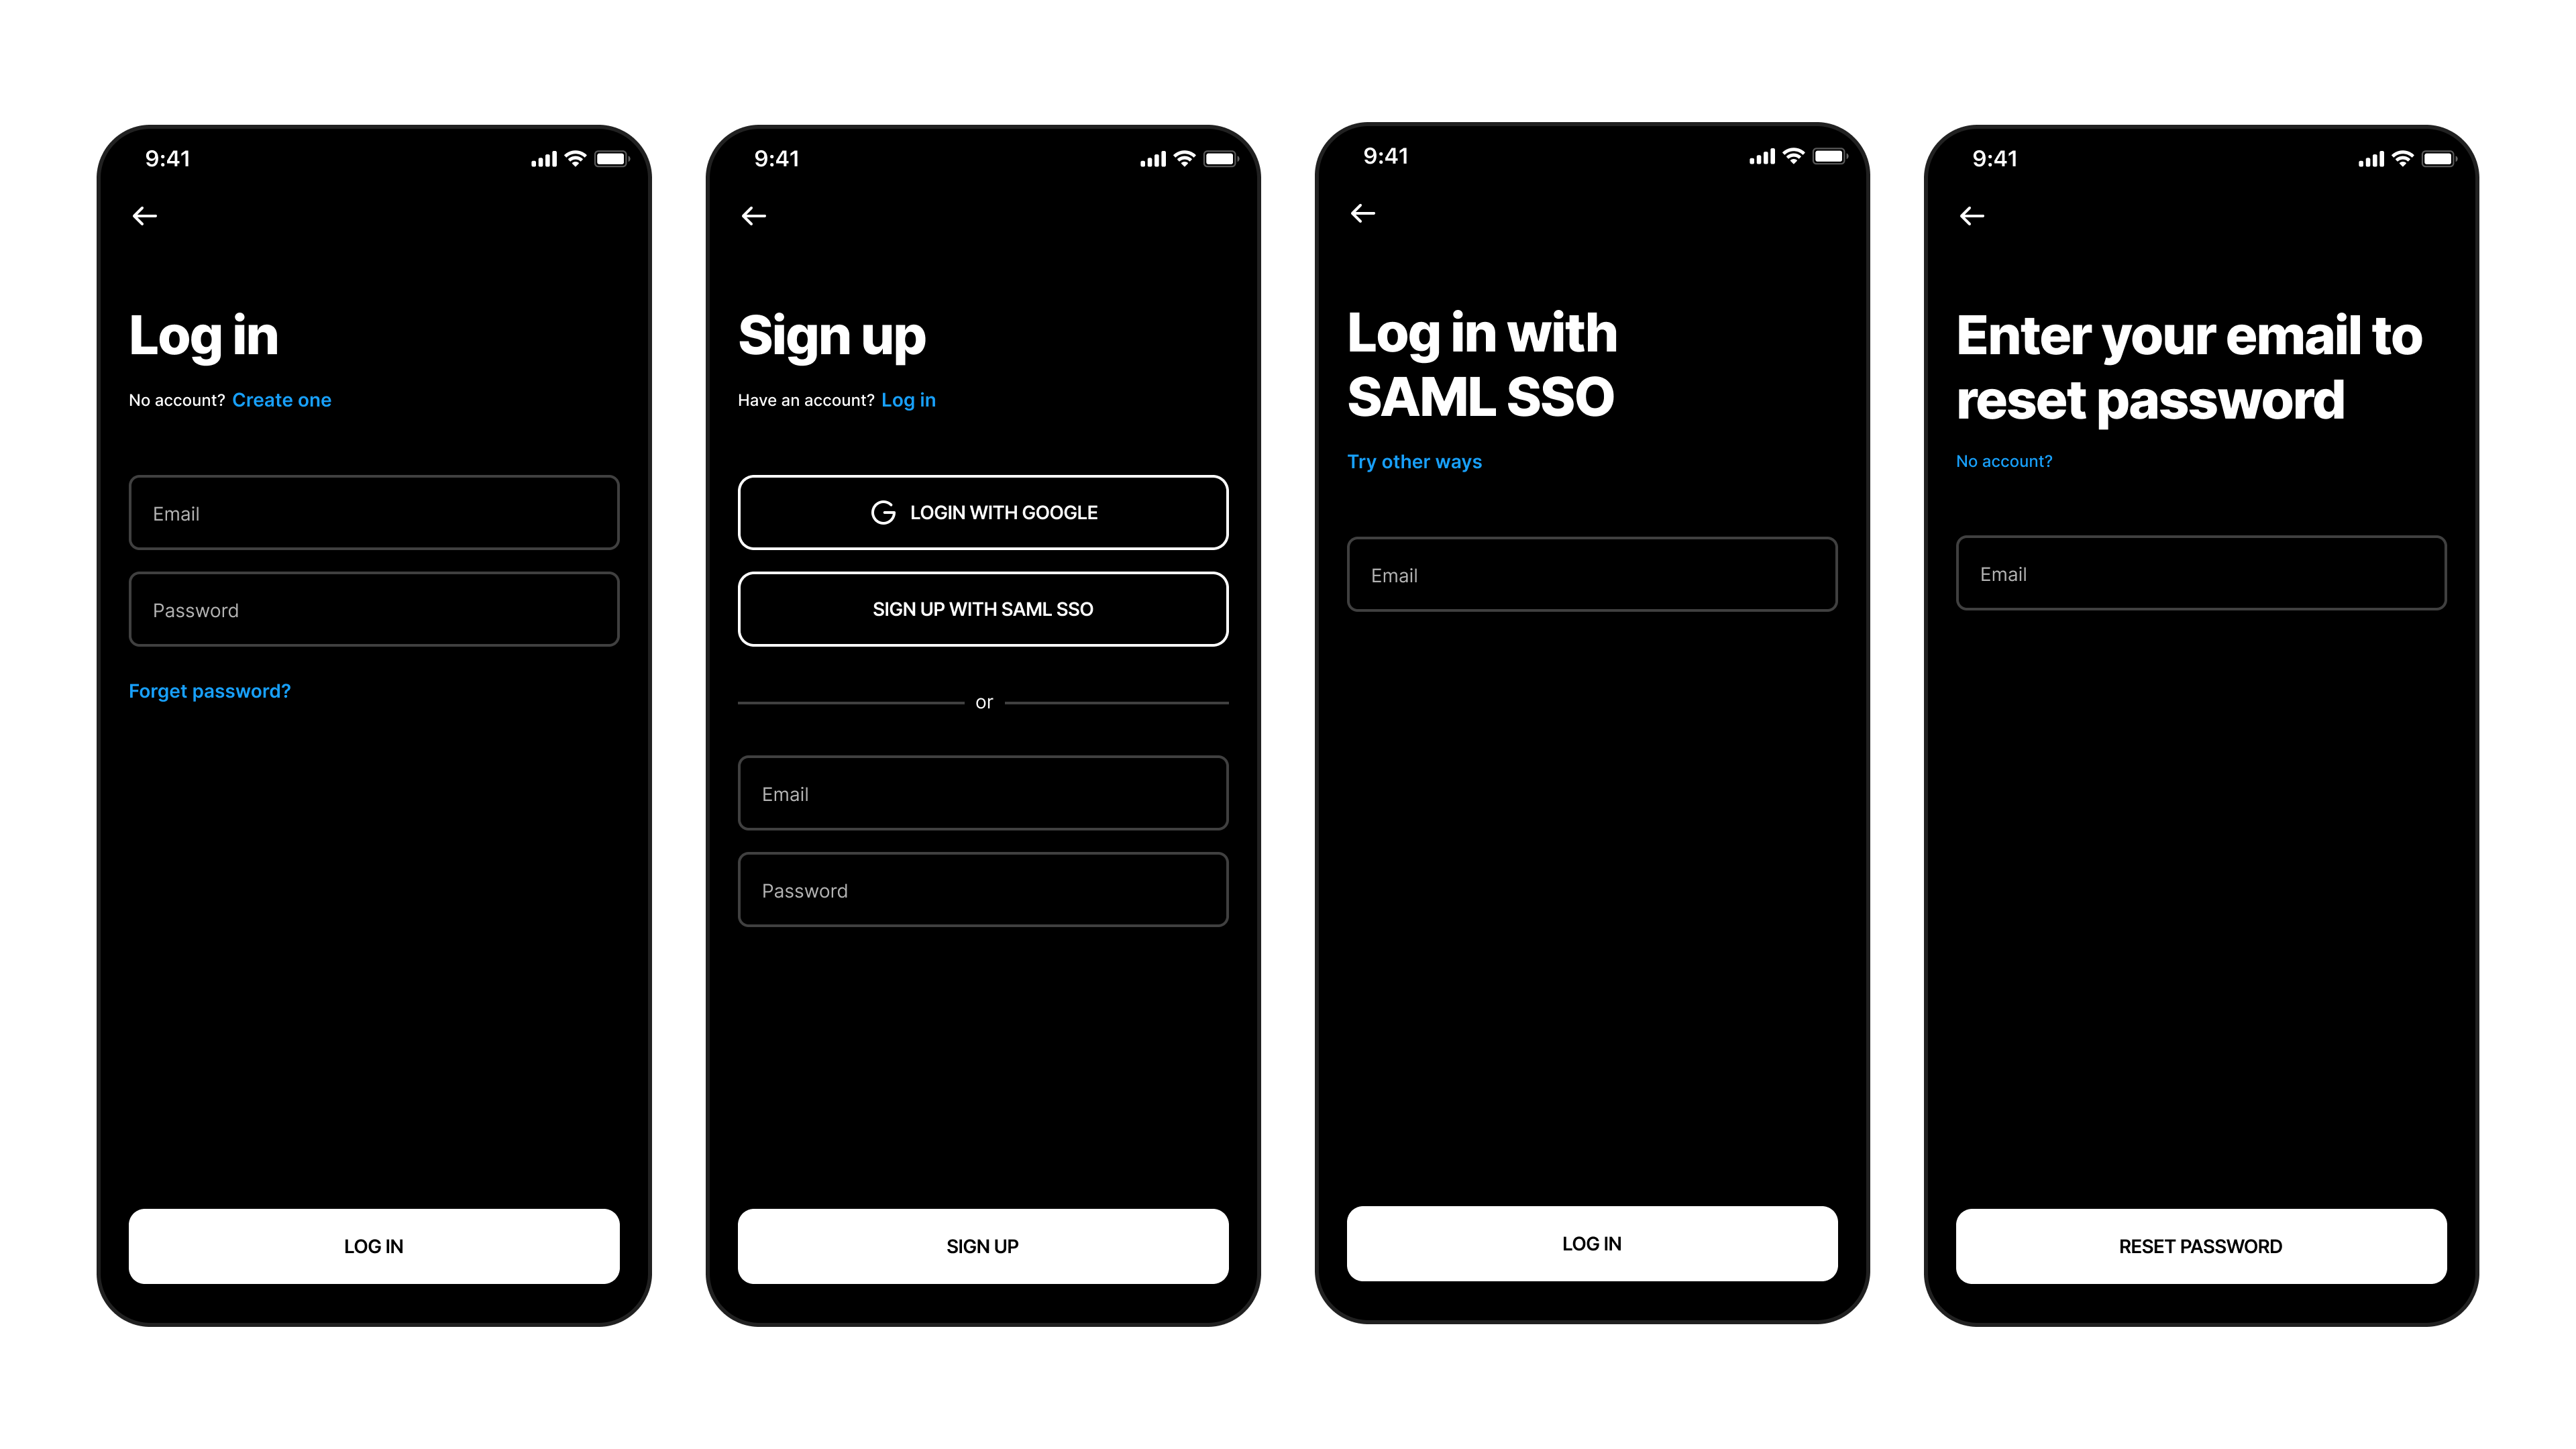 Login and Sign up flows of Figma Mirror Redesign